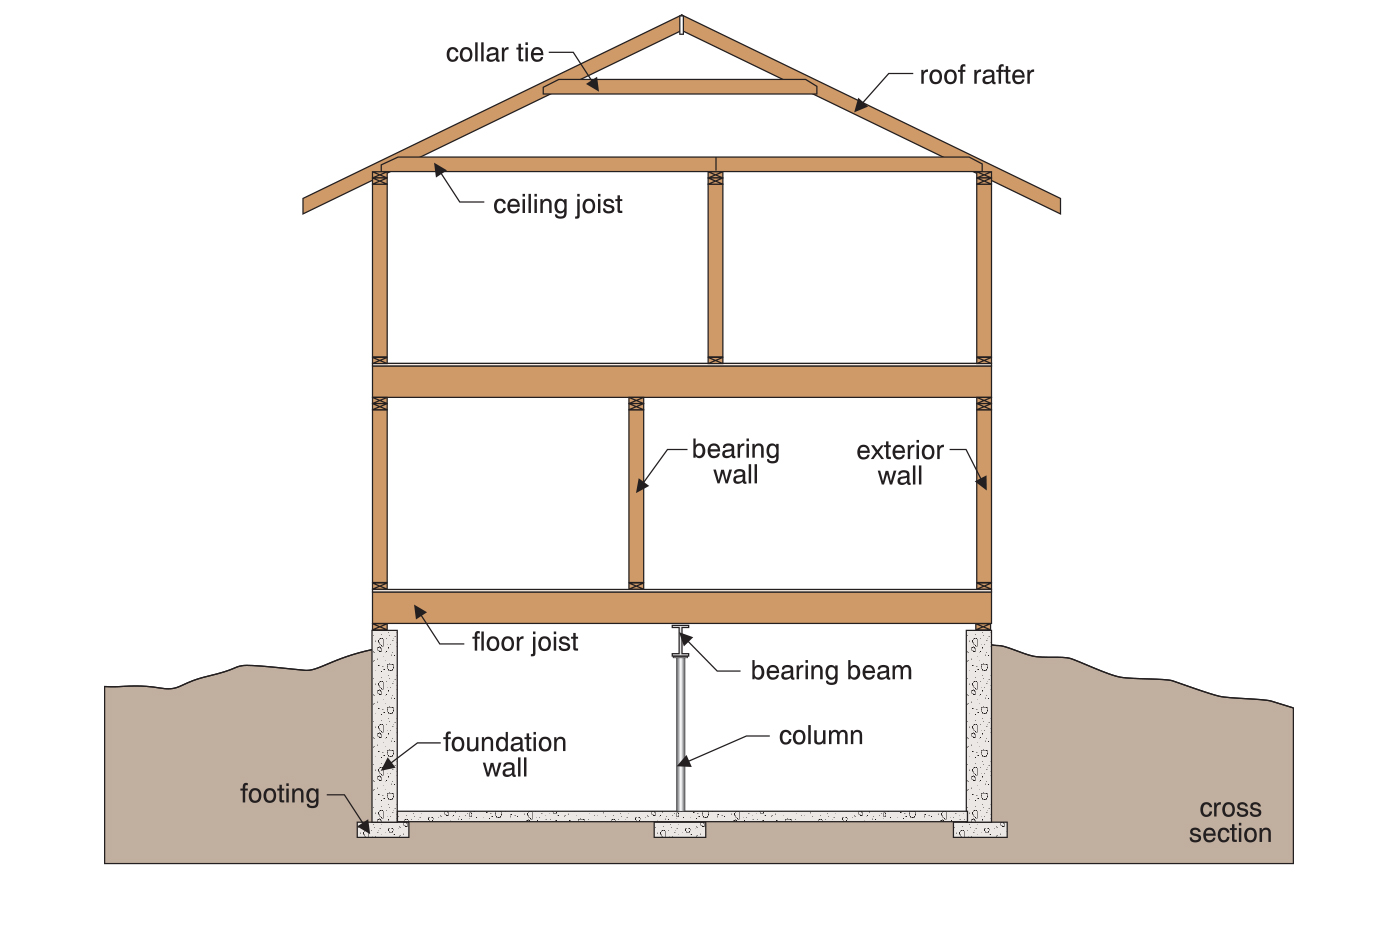 Illustration showing the scope of the inspection includes all of the building structure elements from the roof to foundation